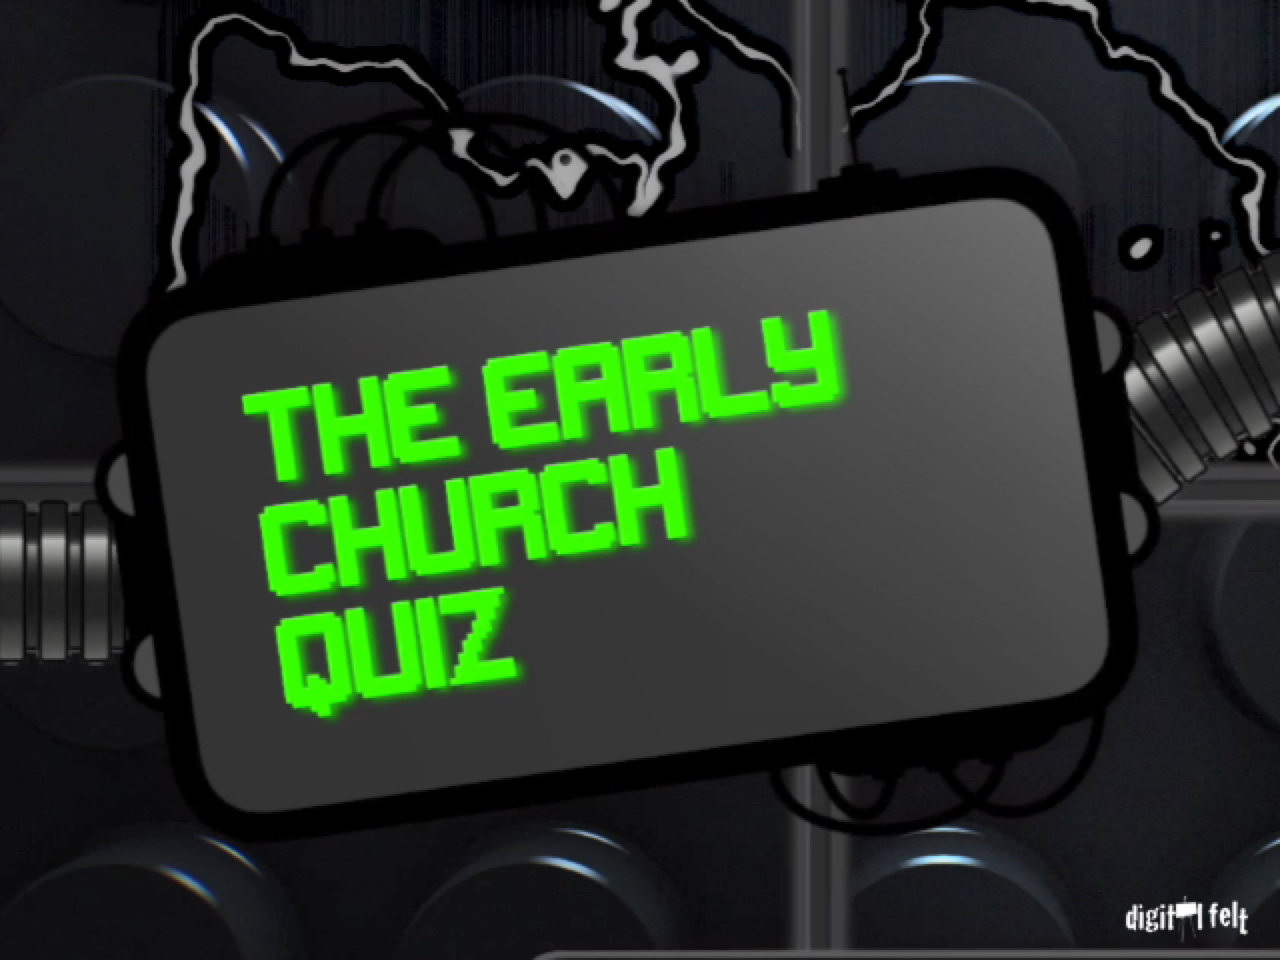 BIBLE QUIZ - THE EARLY CHURCH